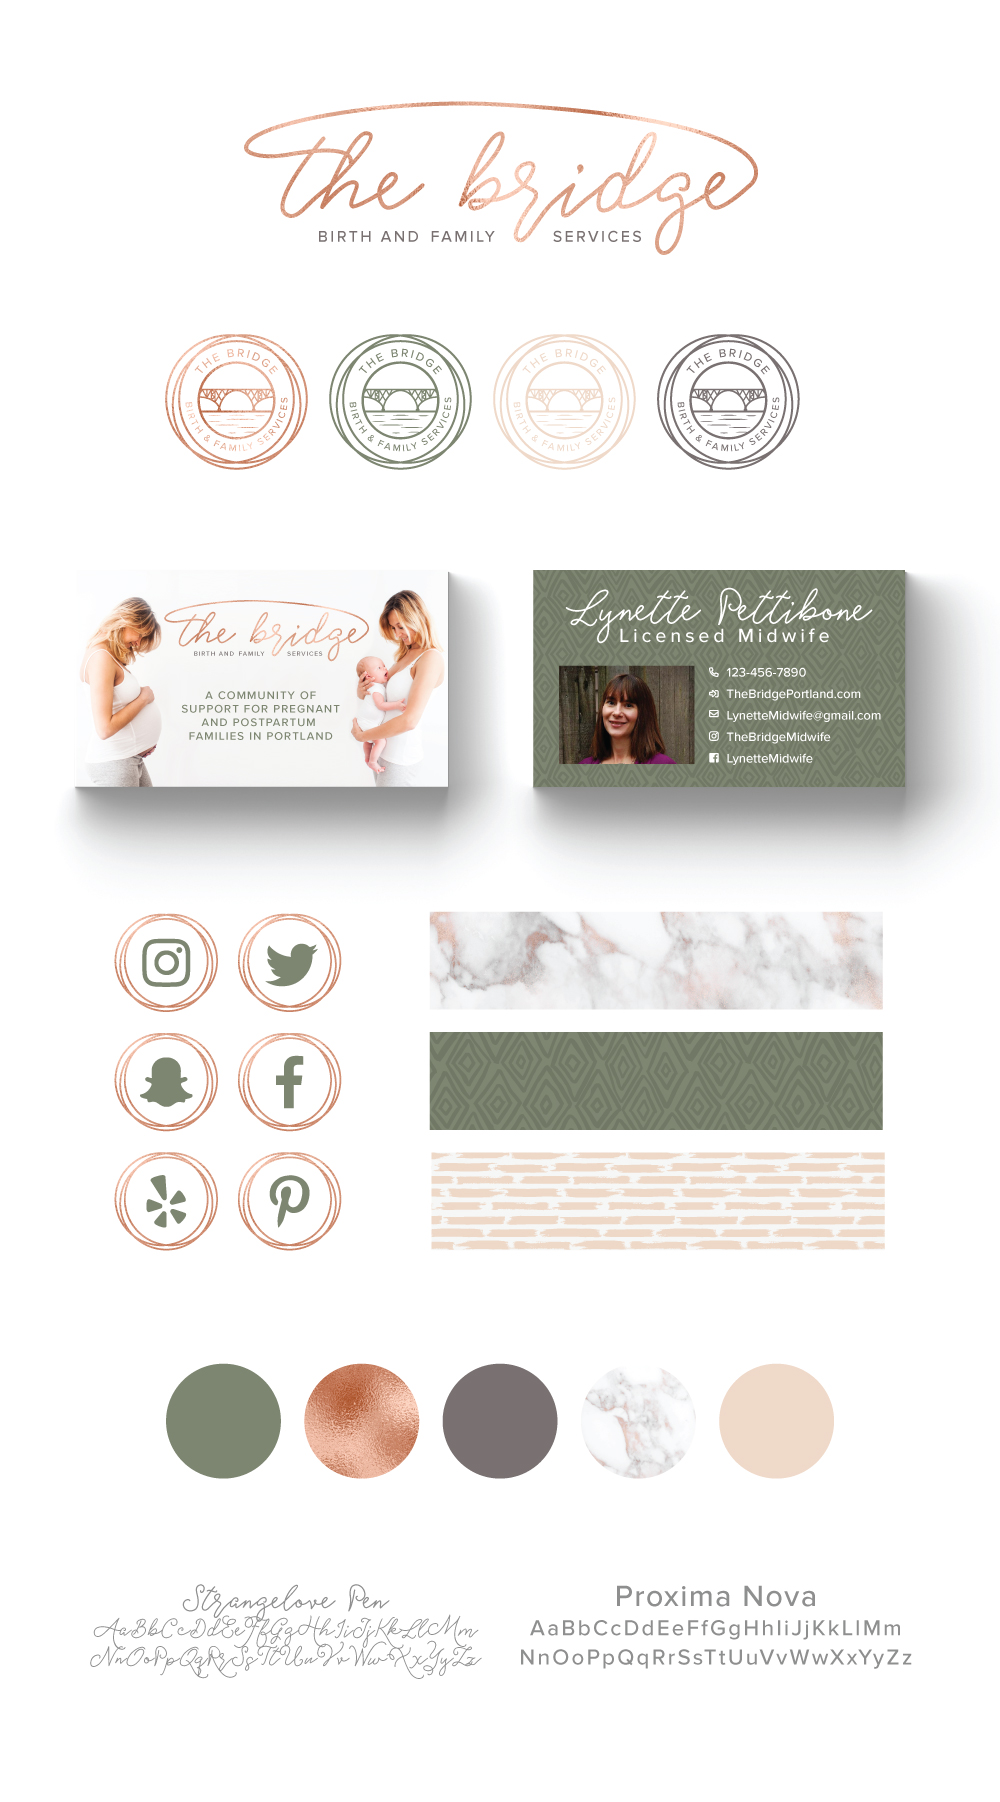 birth doula website design makeover